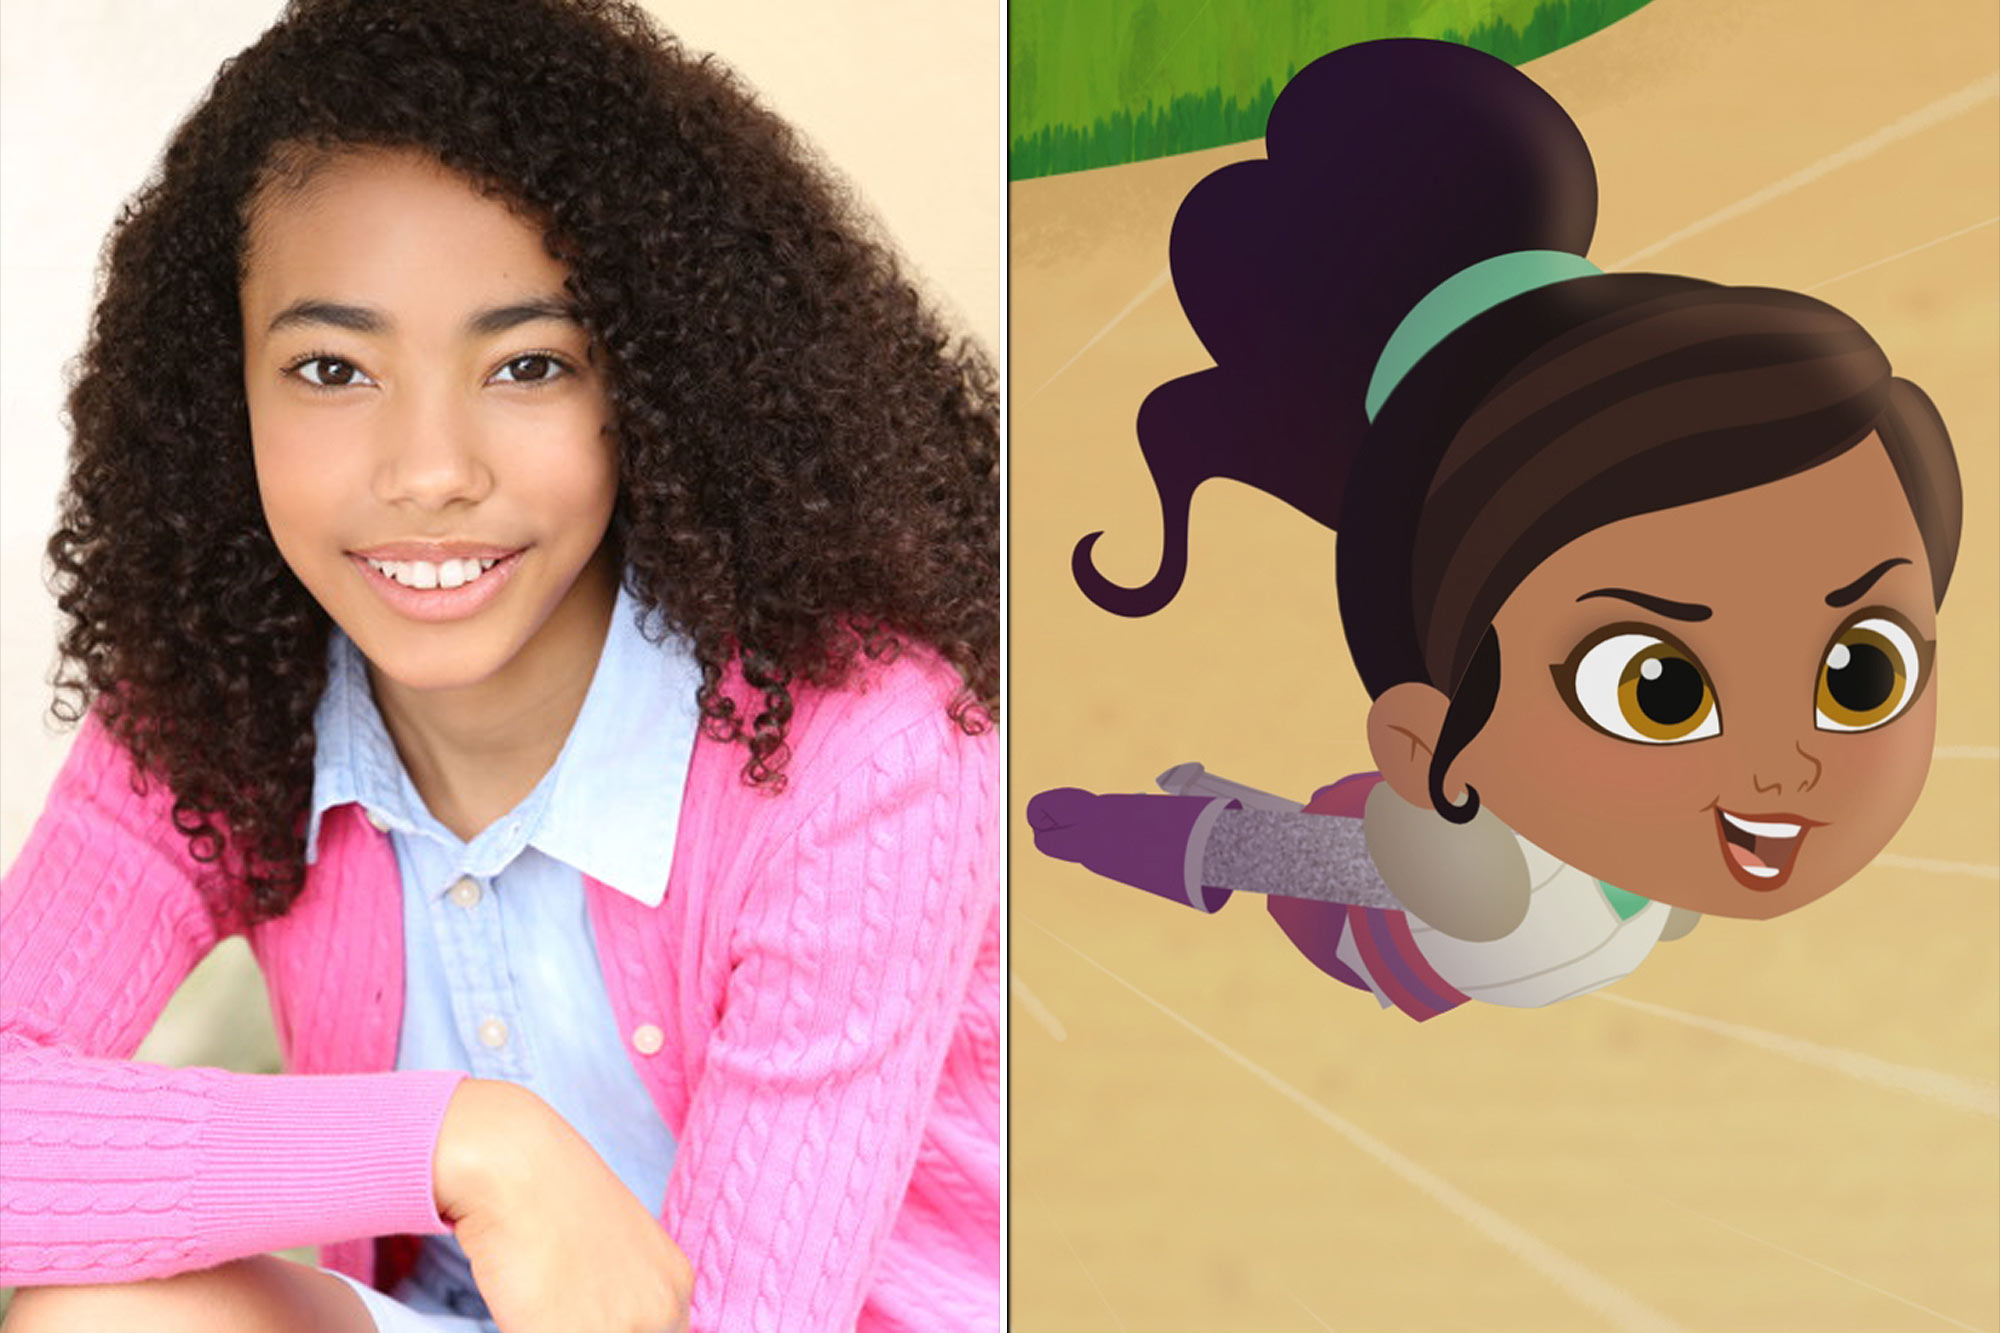 Nick Jr.'s Newest Show Nella the Princess Knight Symbolizes 'Girl Empowerment': 'This is Representative of What Our Country Actually Does Look Like'